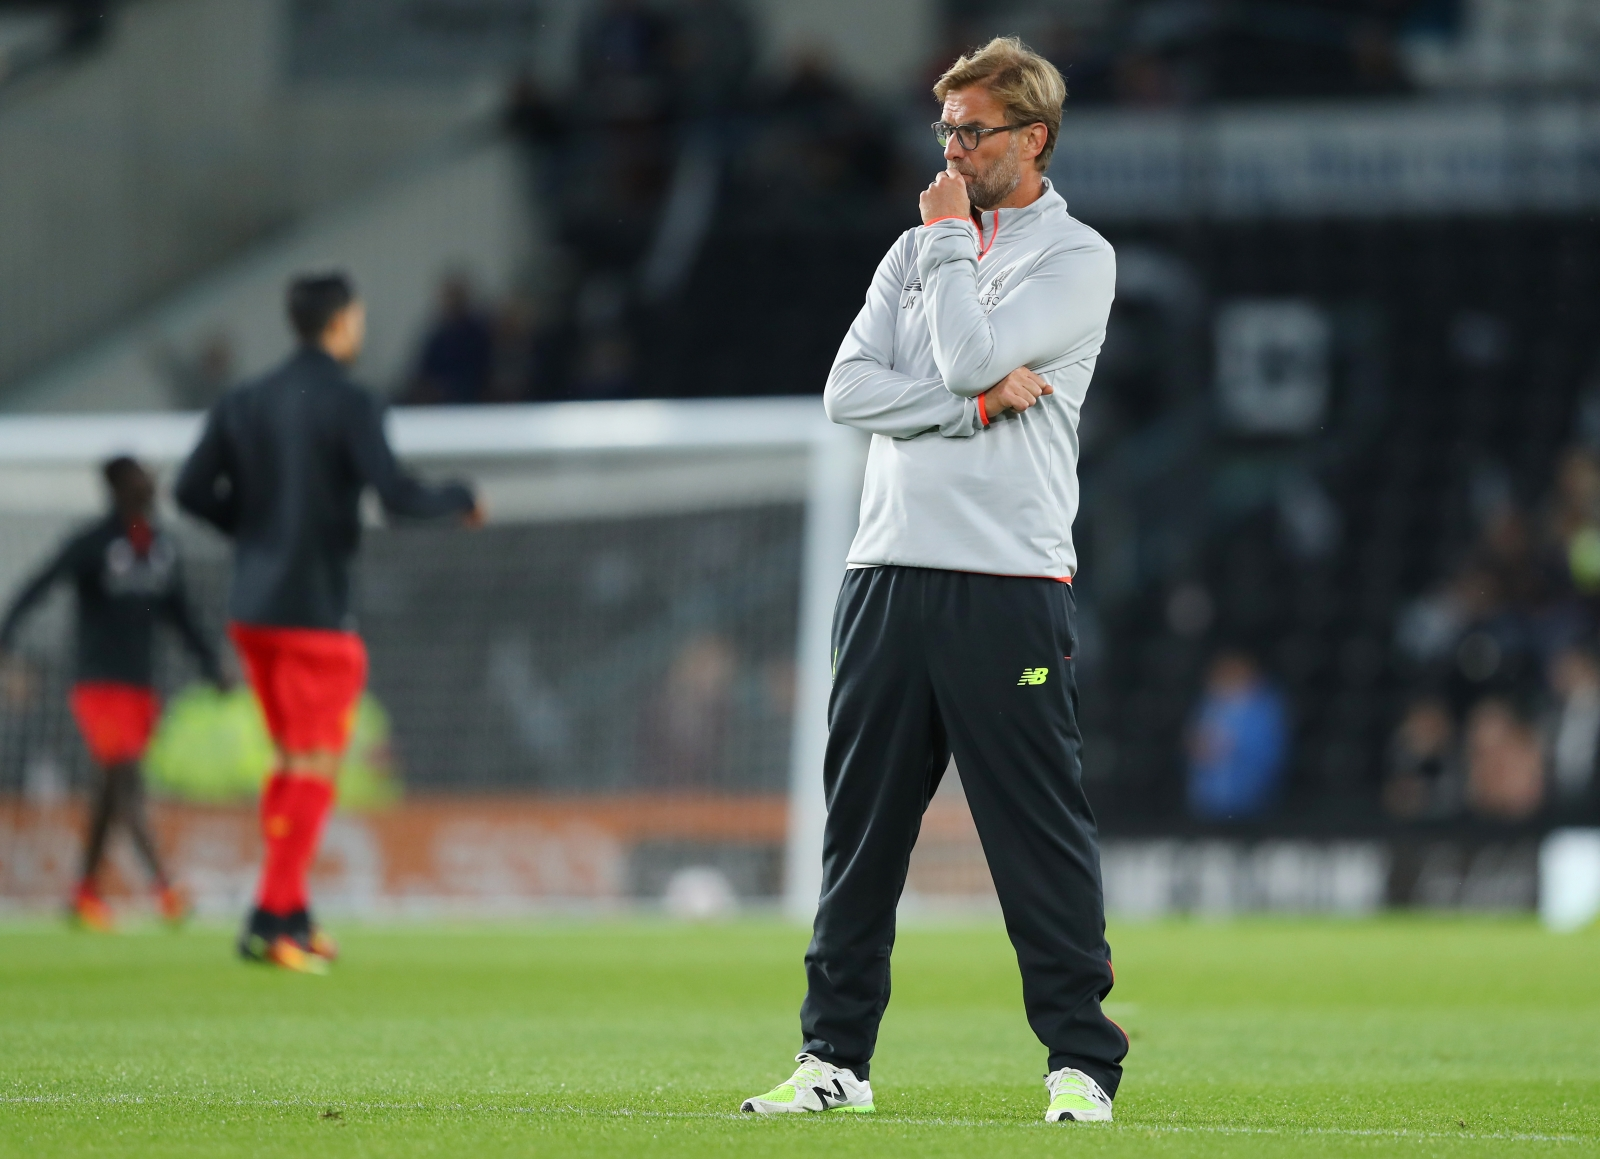 Jurgen Klopp outlines flaws but pleased with 3-0 victory